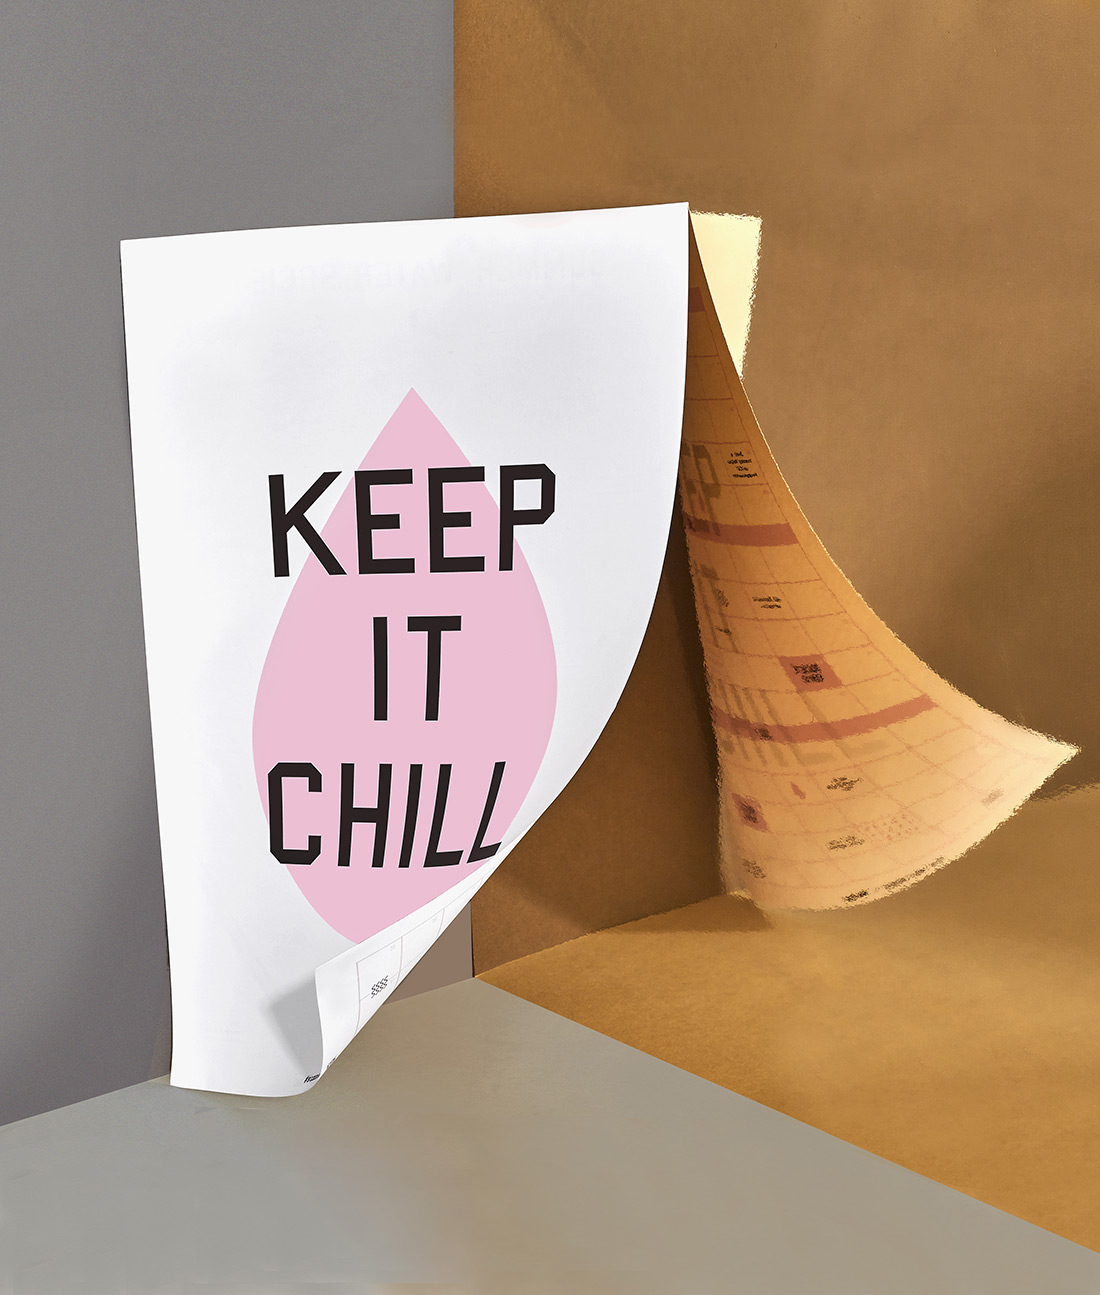 KEEP IT CHILL.